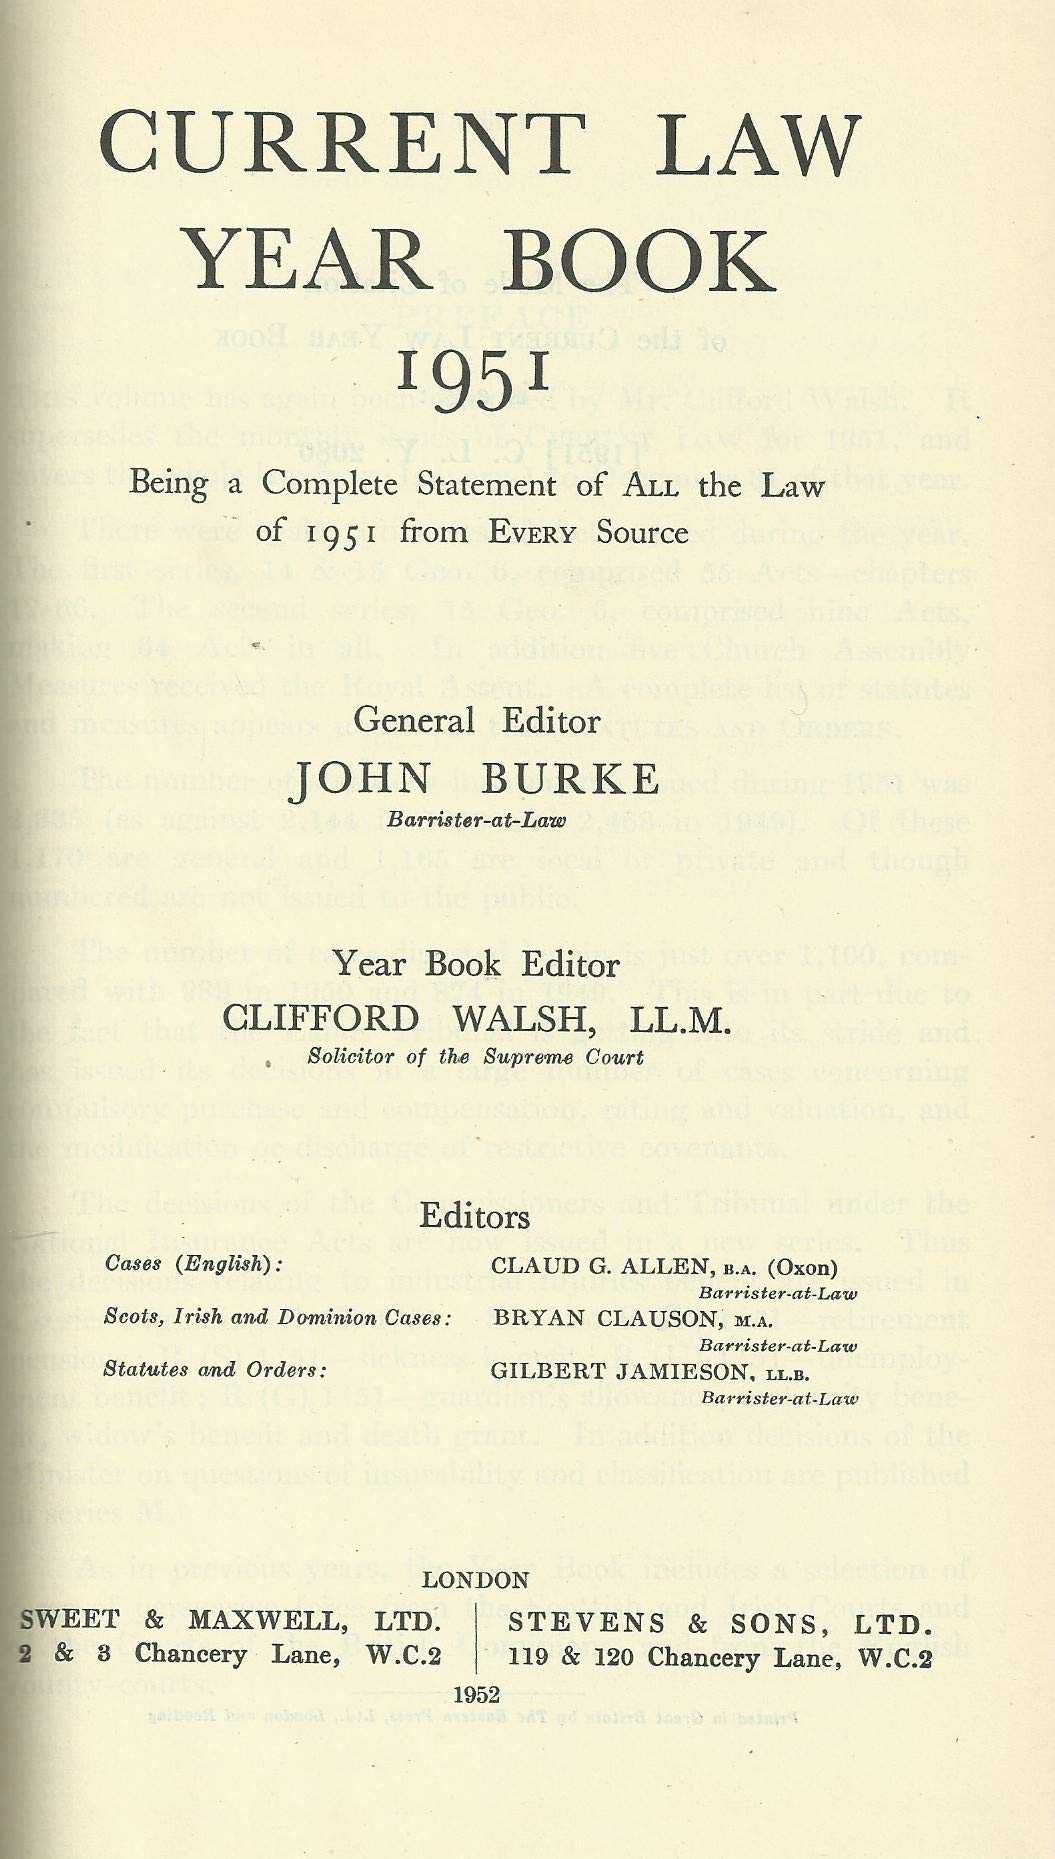 Current Law Year Book 1951. All the Law of 1951 from Every Source.